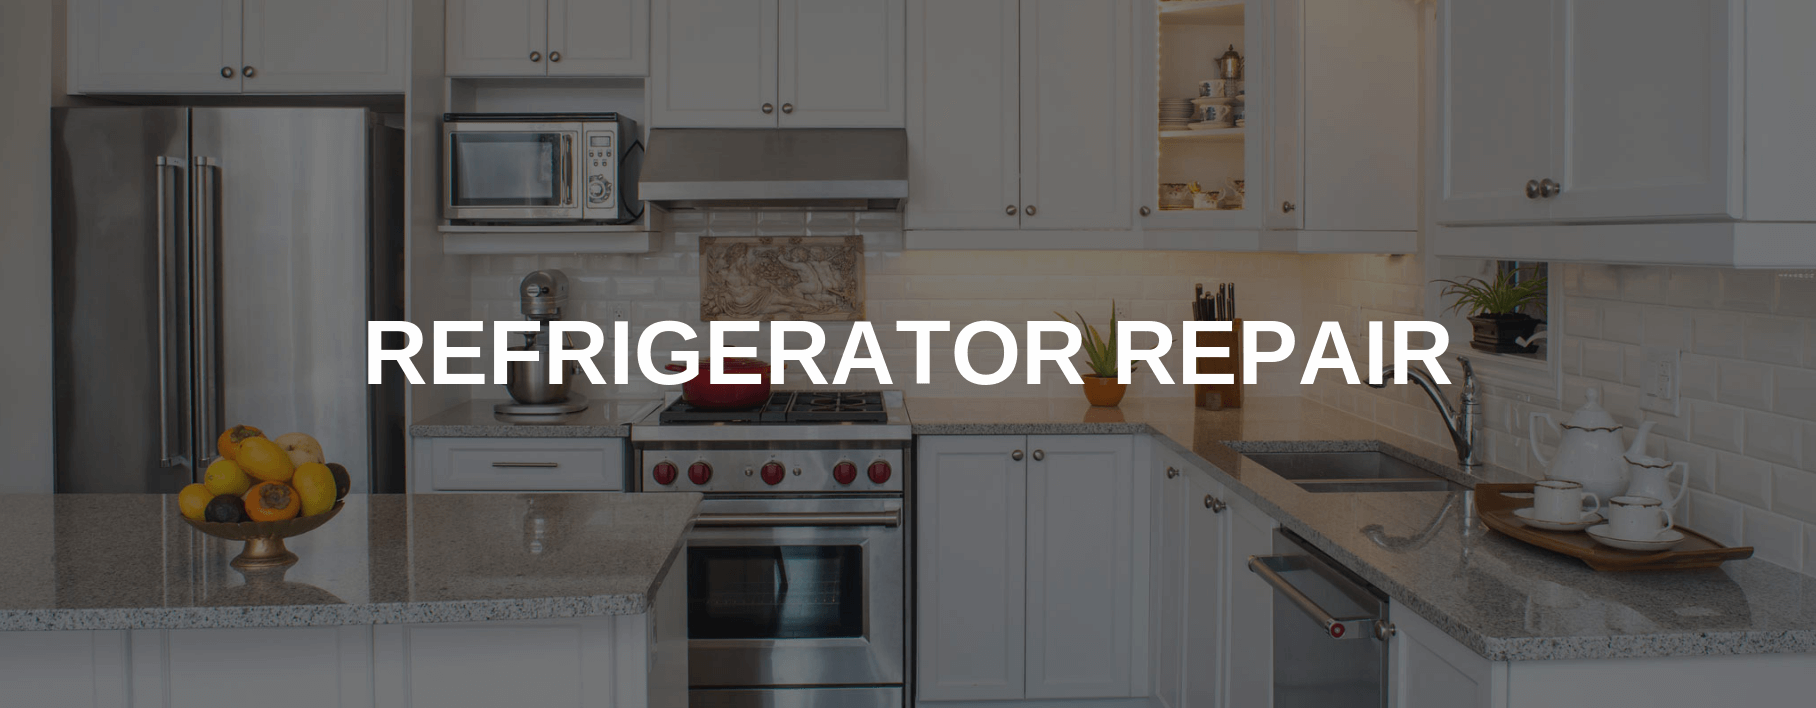 refrigerator repair irving